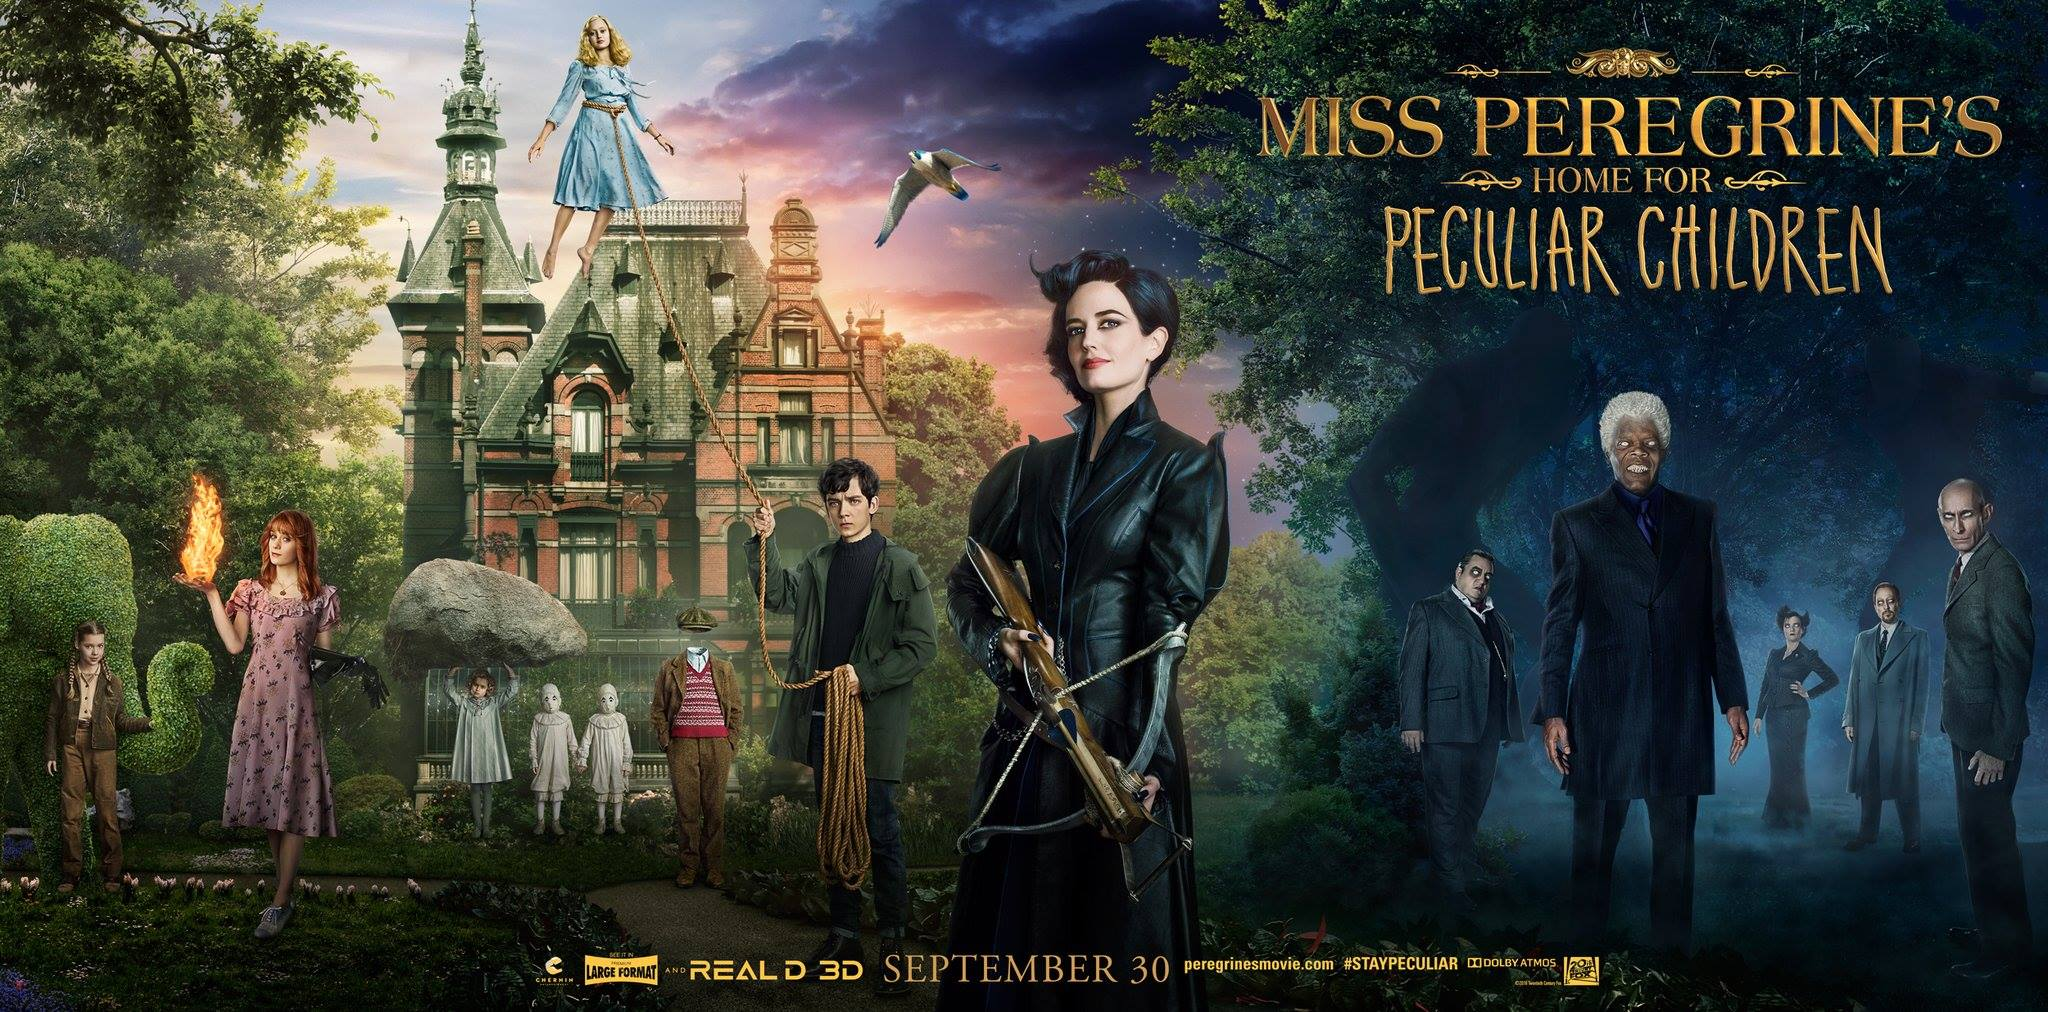 Miss Peregrine's Home for Peculiar Children: A Latter-day Saint review